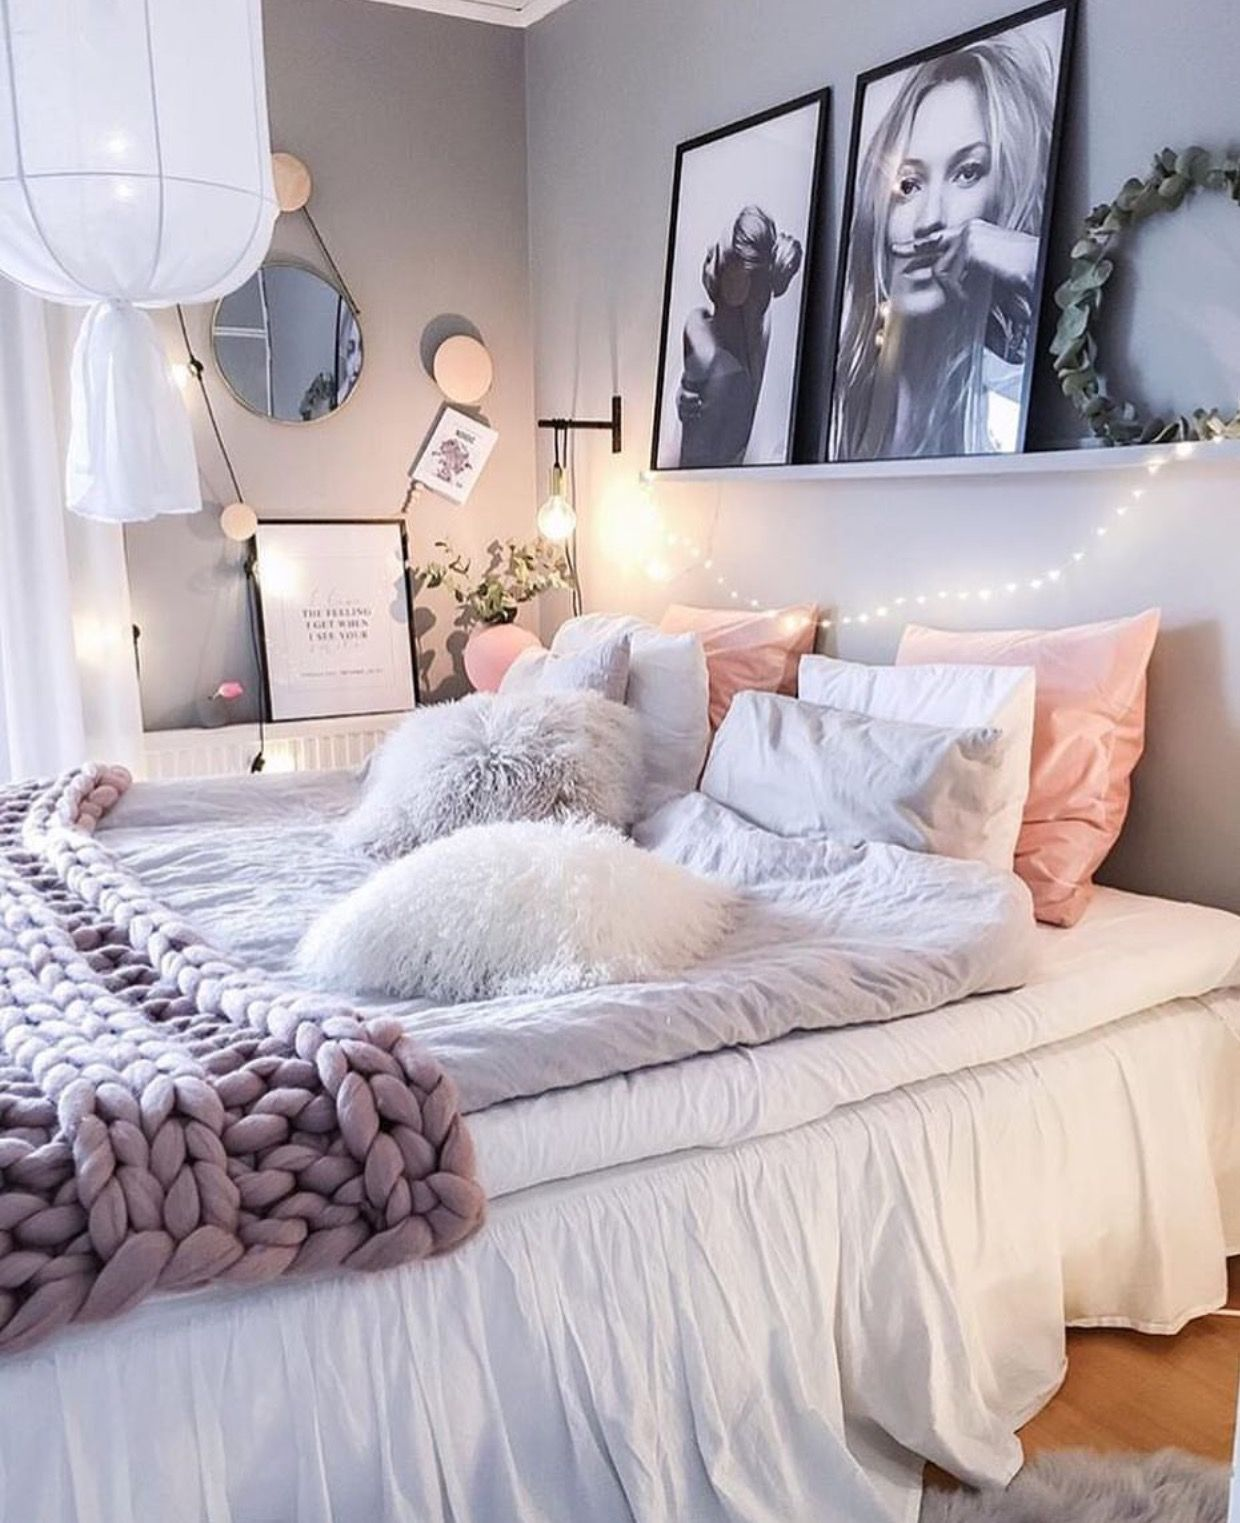 Girly Bedroom Decor Pinterest: Bedroom Ideas In 2019